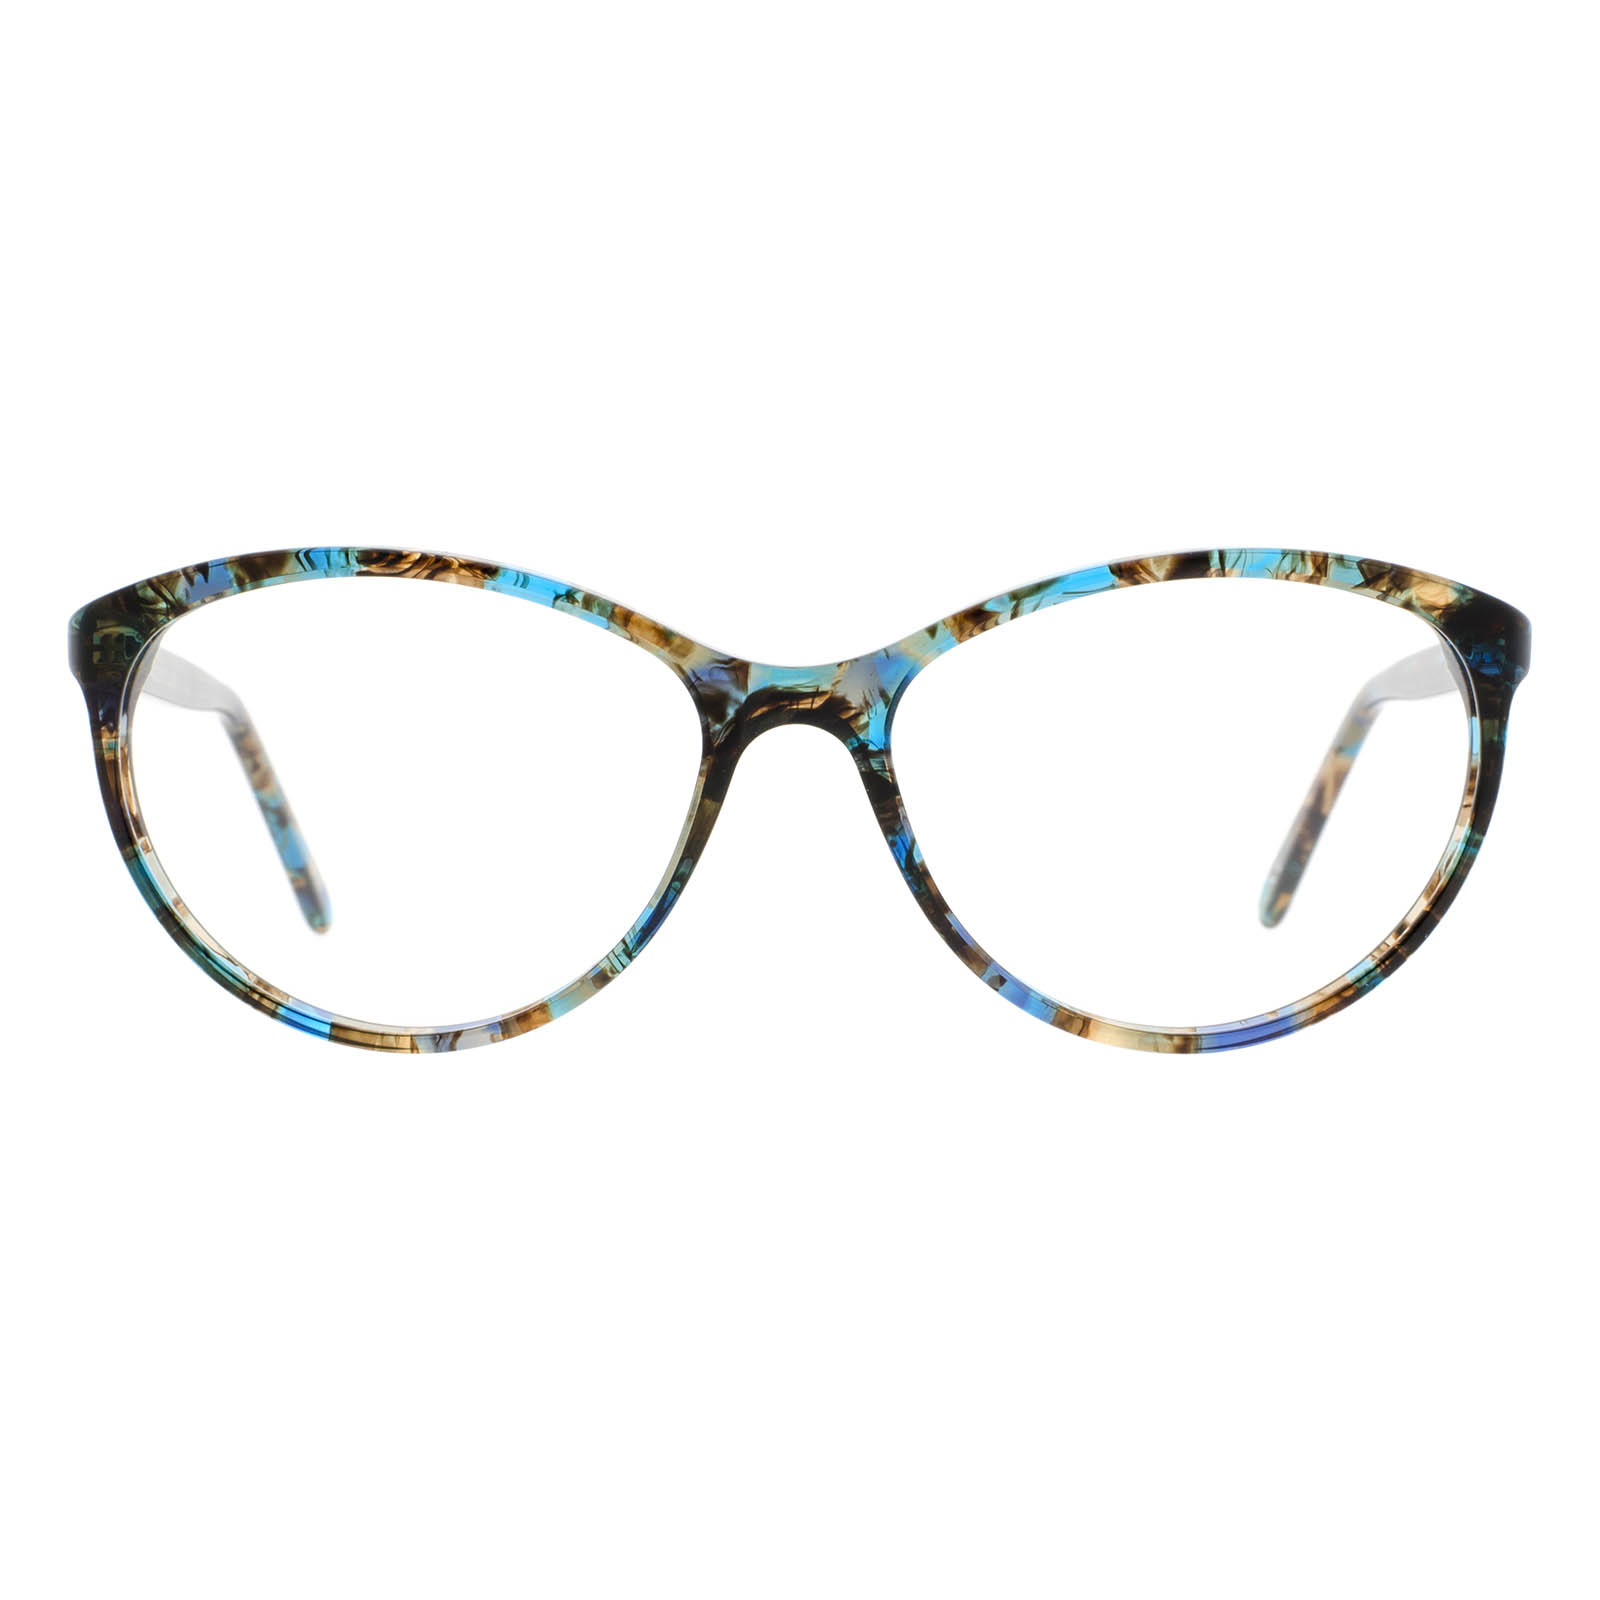 ANDY WOLF EYEWEAR_5056_P_front